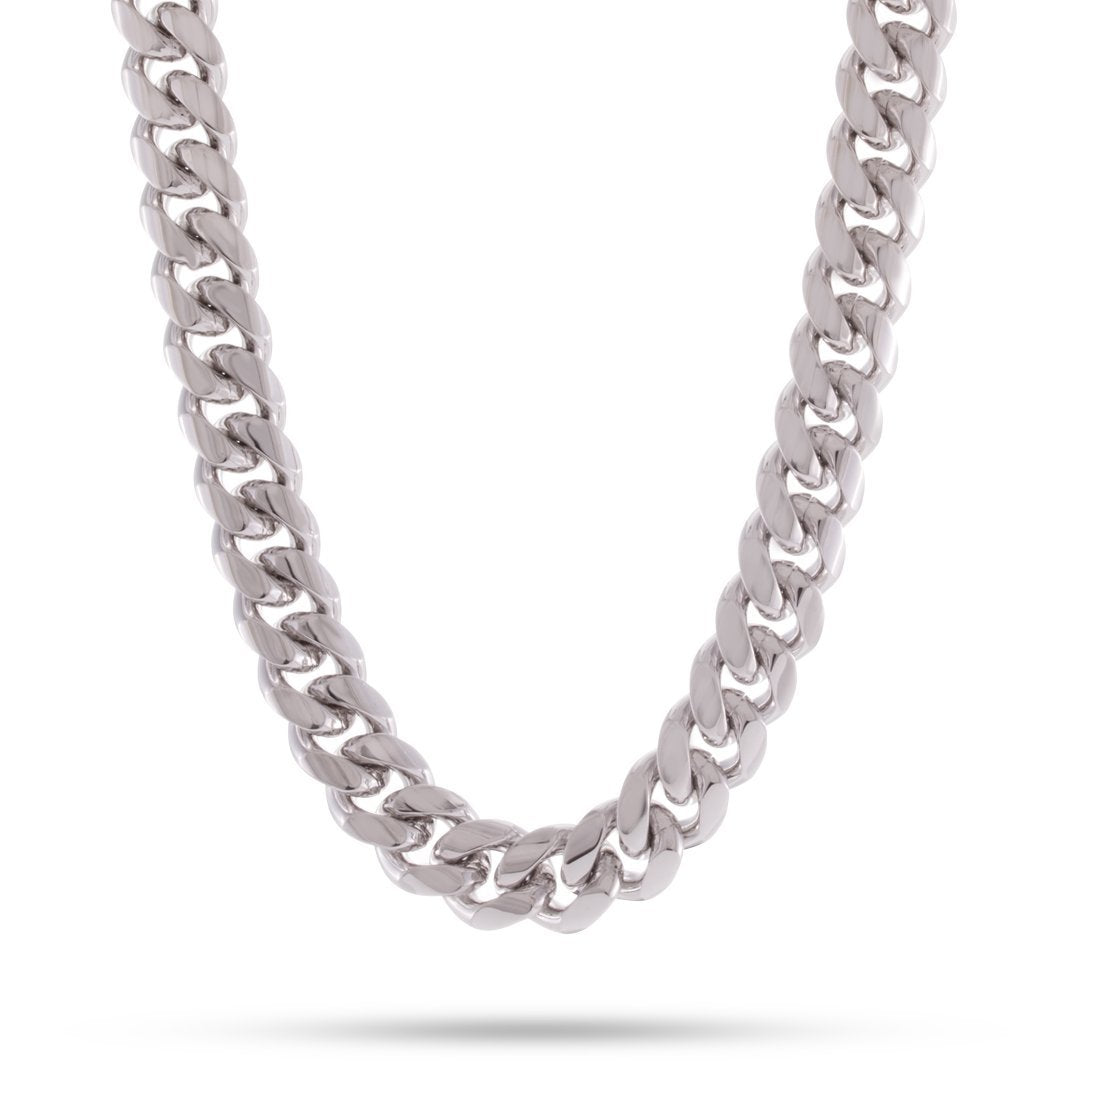 Chains - 12mm, Stainless Steel Miami Cuban Curb Chain -   jetcube